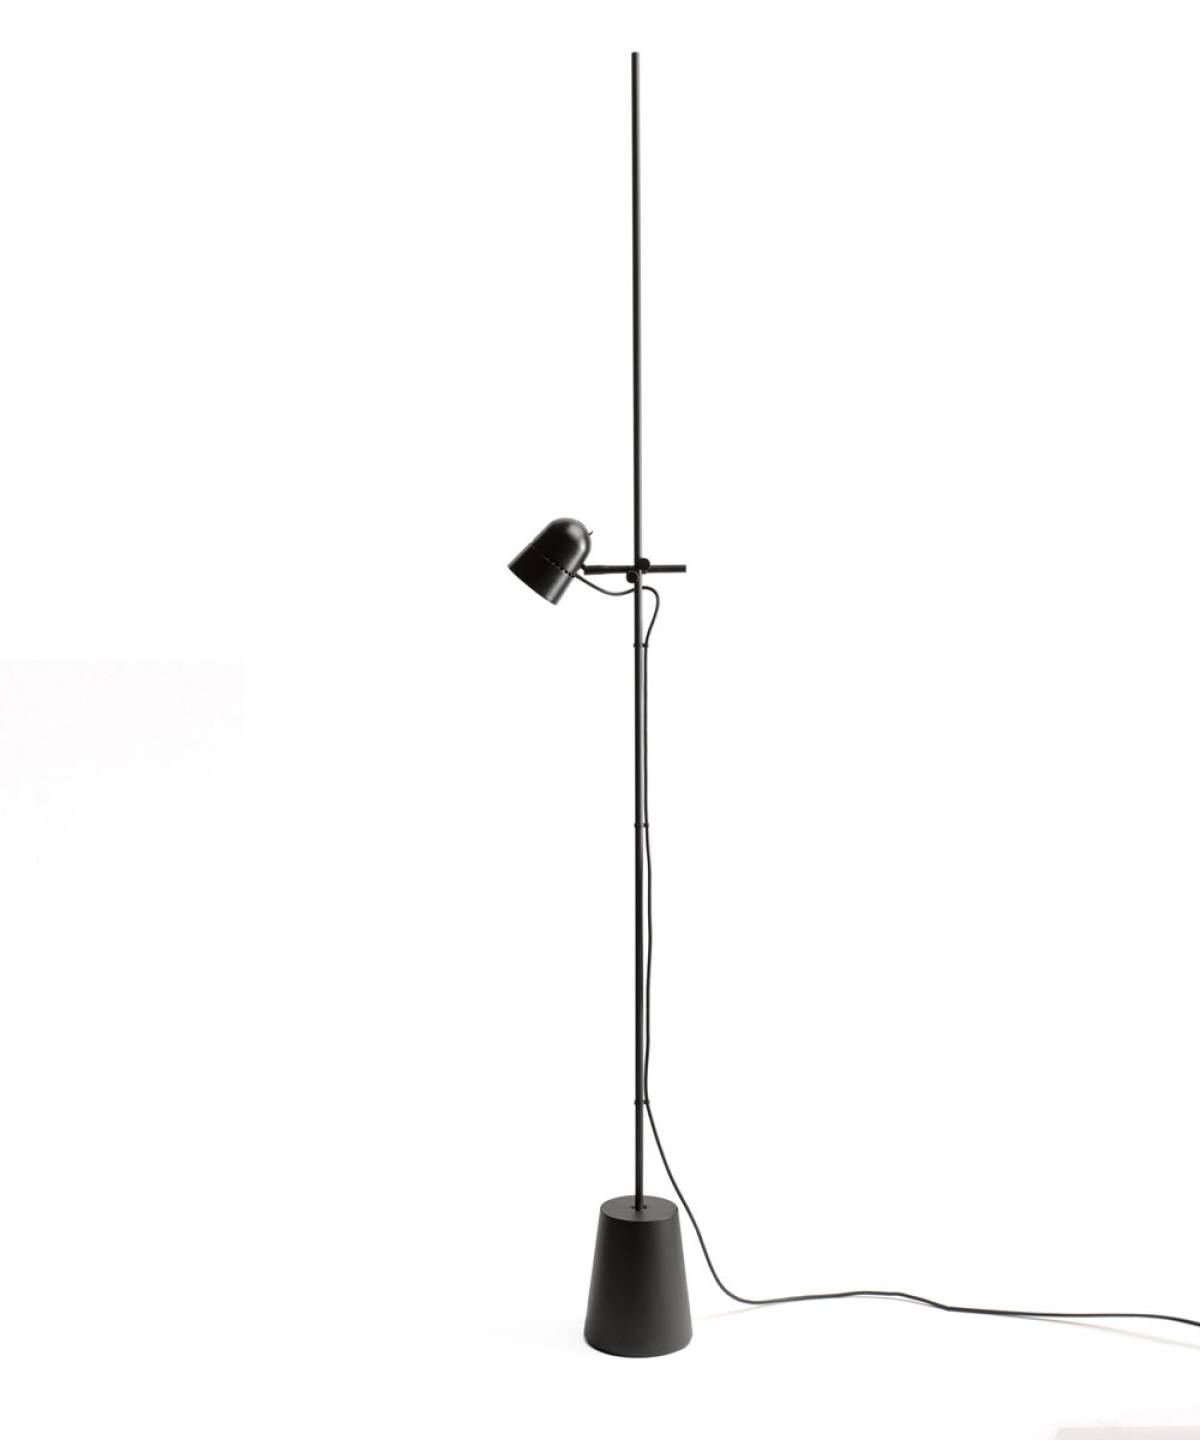 2 Counterbalance floor lamp Luceplan